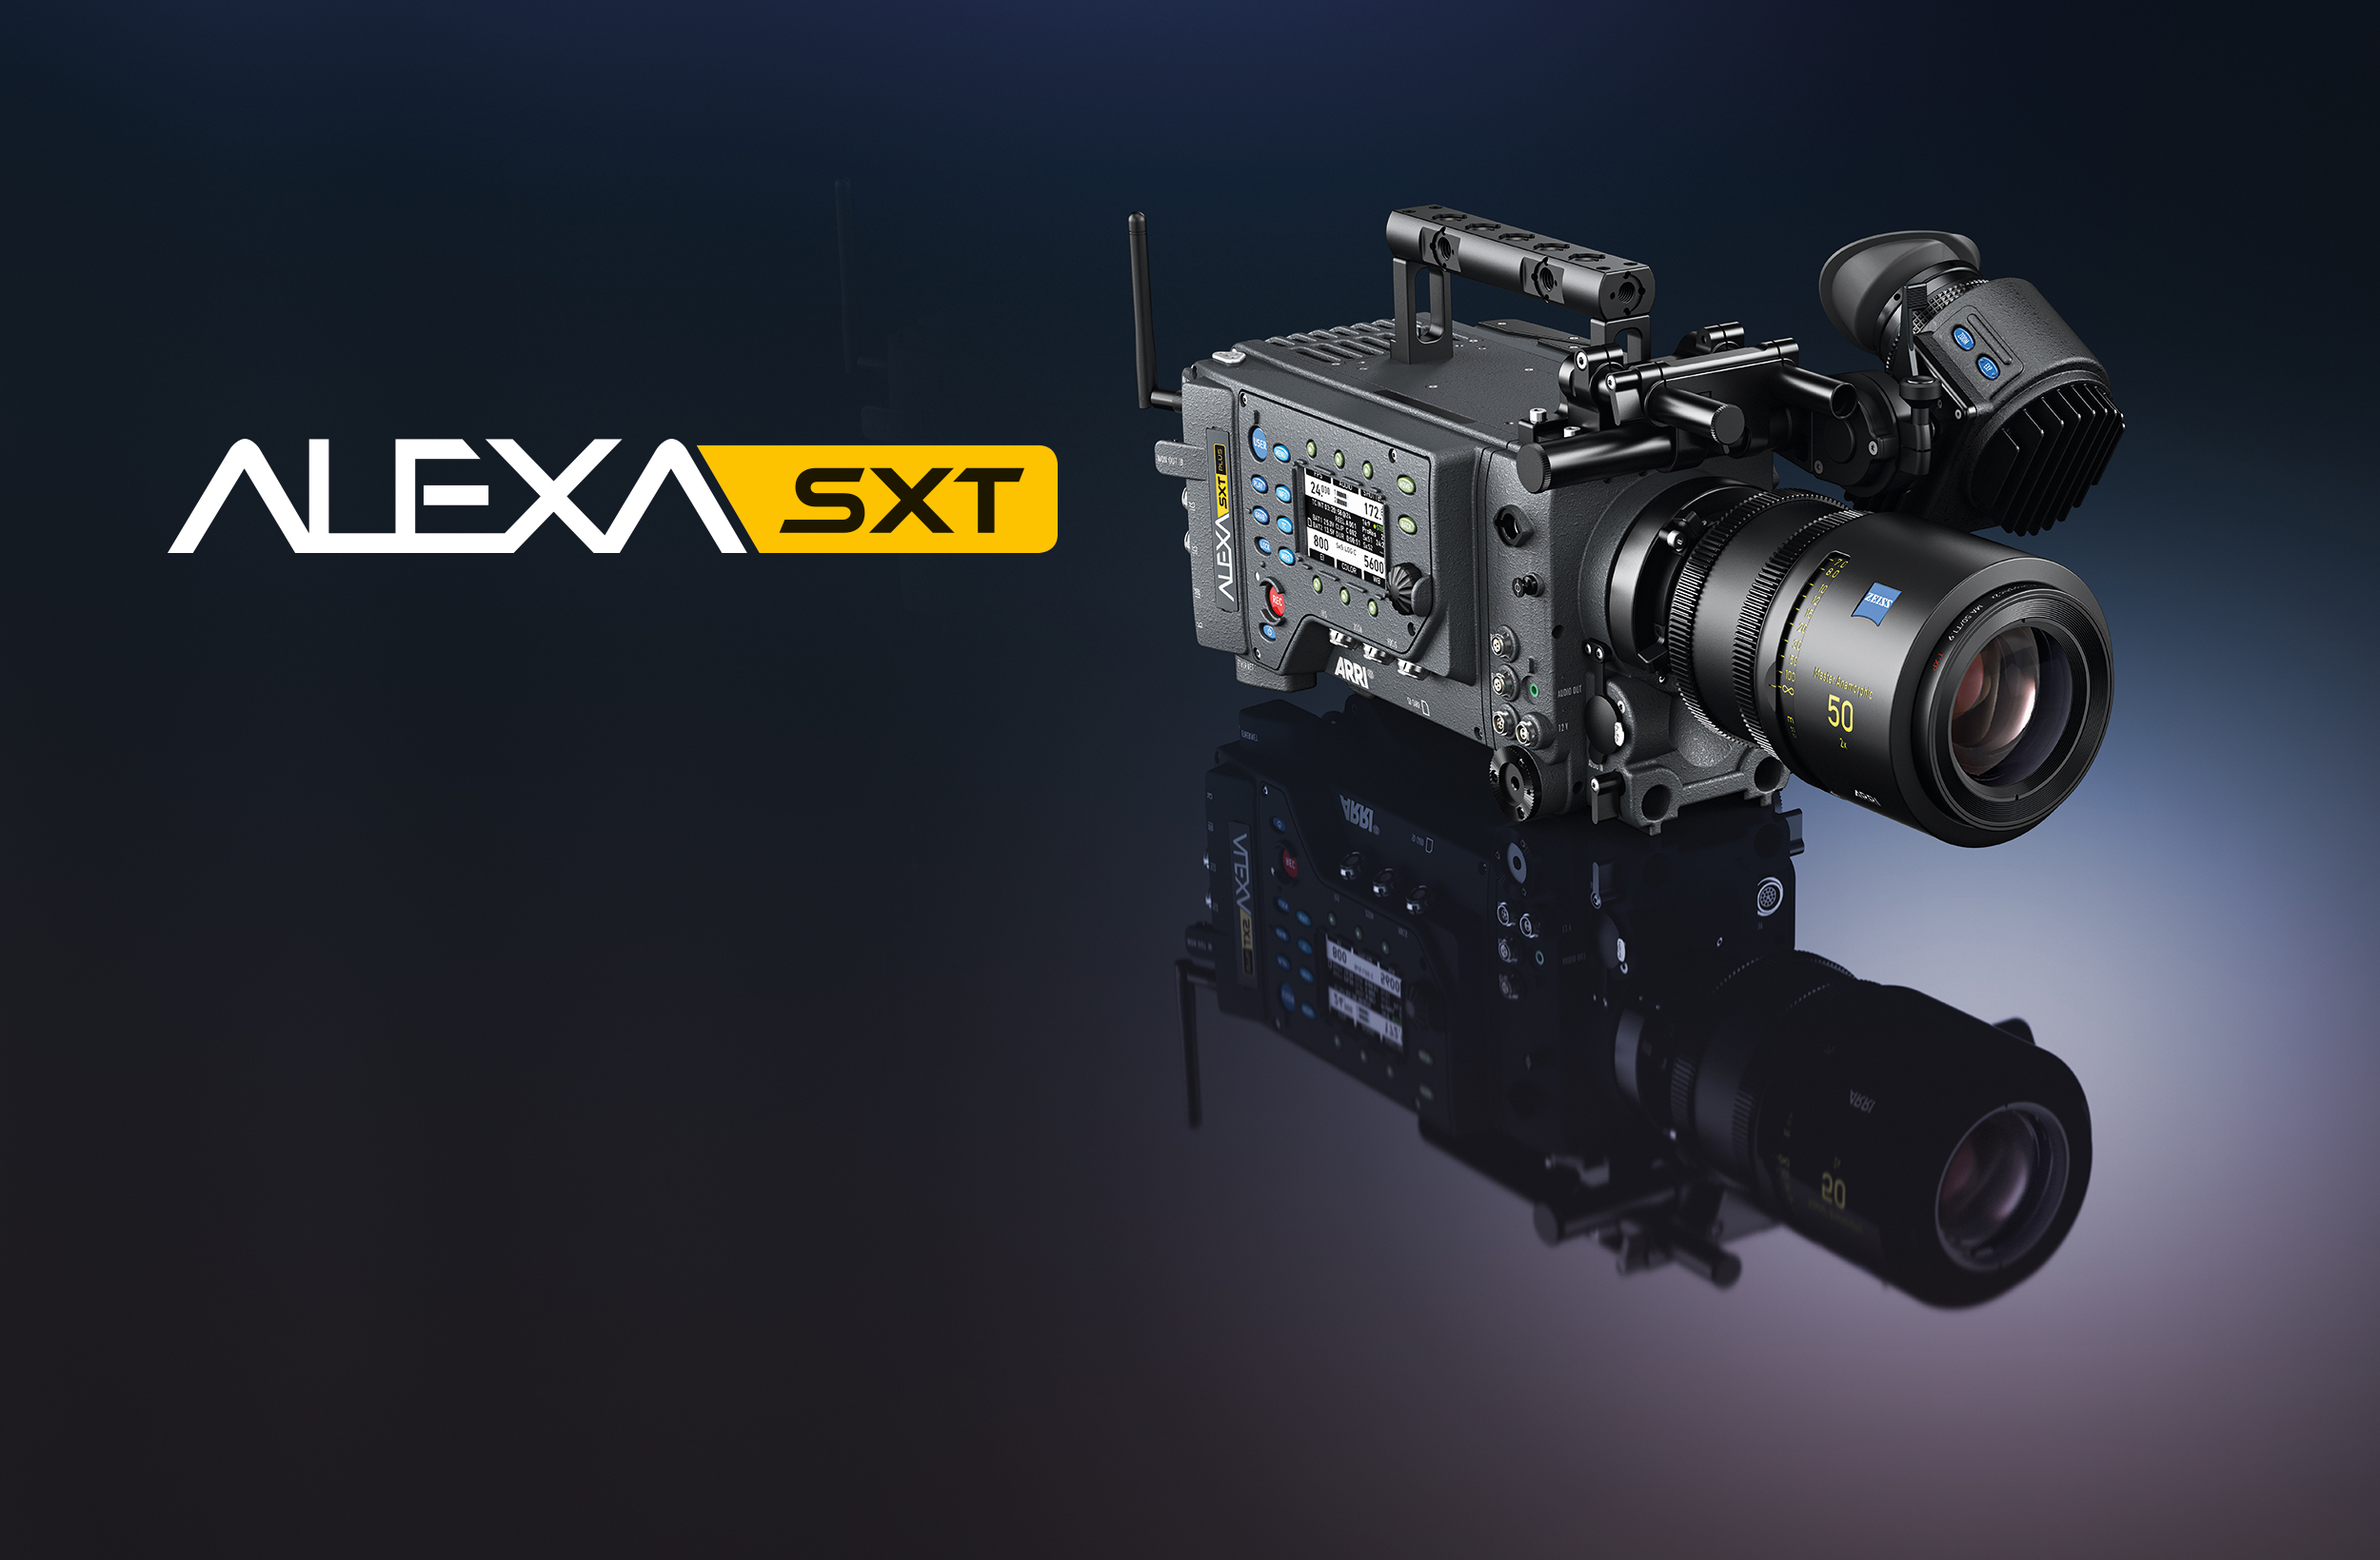 The ALEXA SXT camera now offers a total of 14 recording formats, including the following new modes.